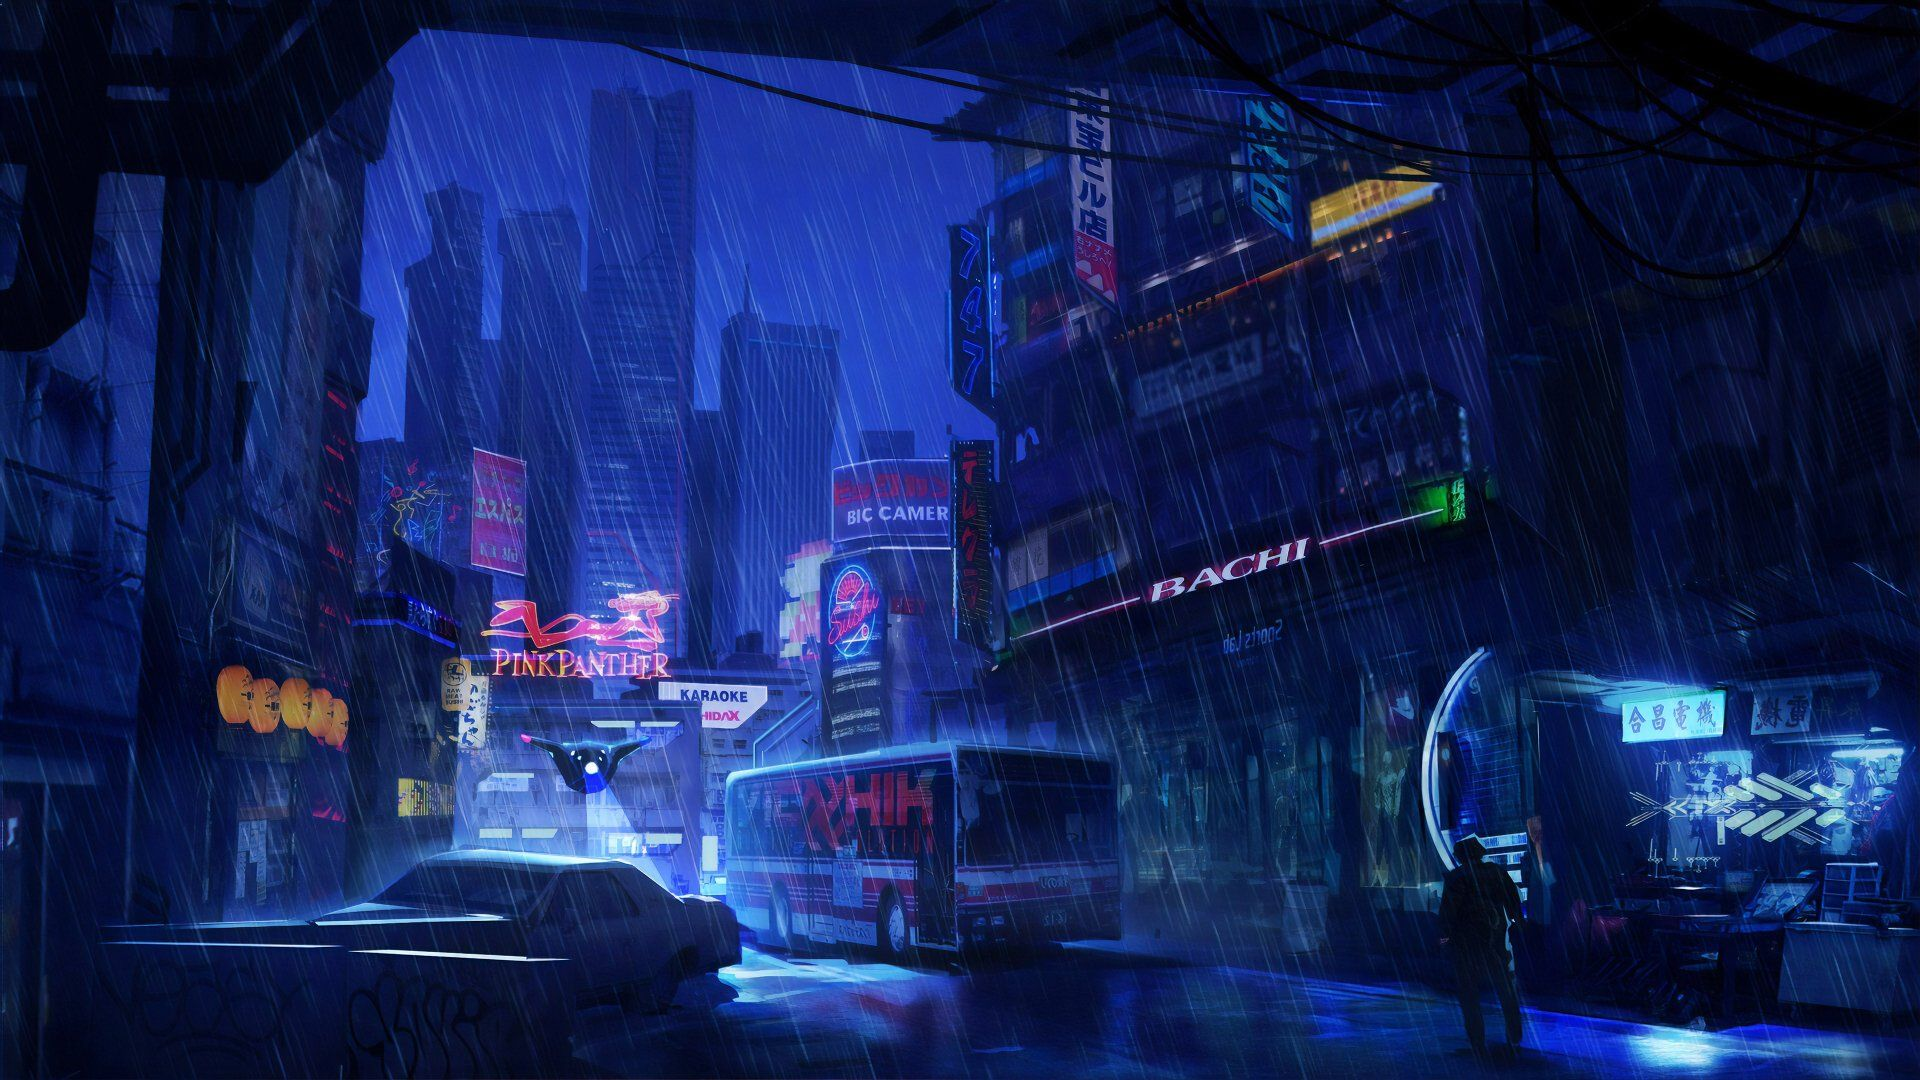 3840x2160 City Wallpaper Background Image View Download Comment And Rate Wallpaper Abyss In 2020 Cyberpunk City Fantasy City Cyberpunk